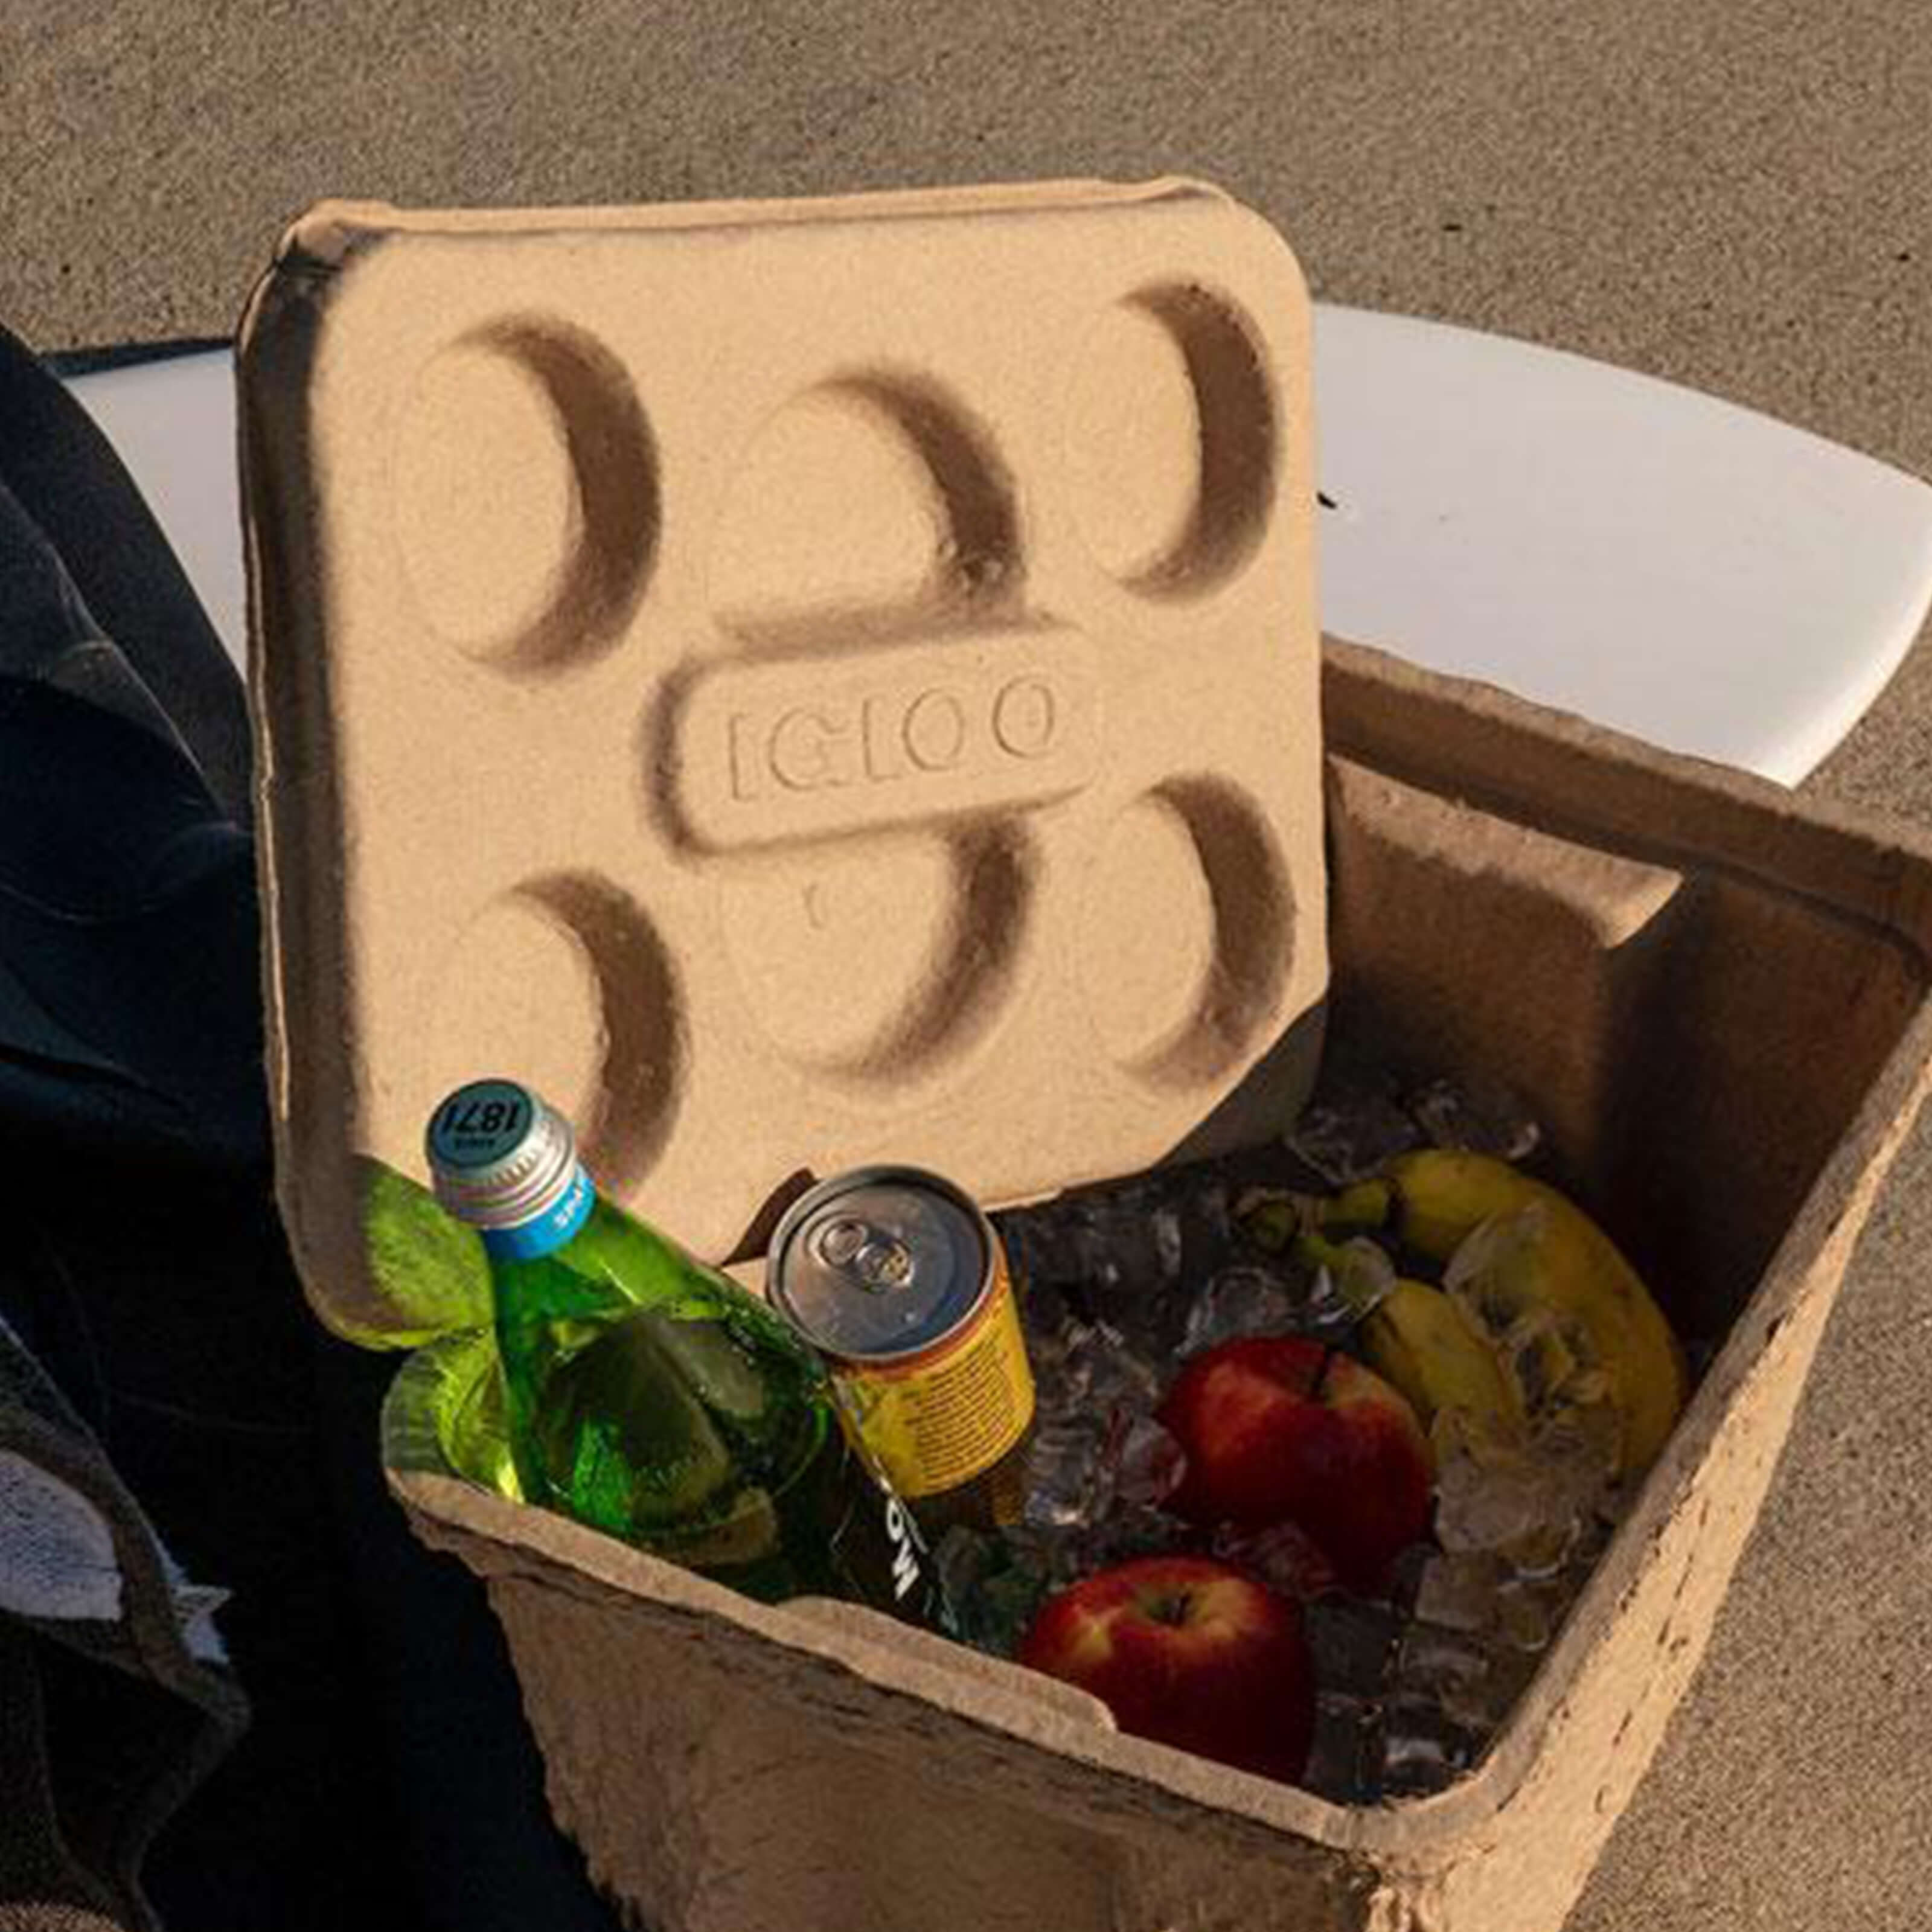 Recool Review: A Look at Igloo's Biodegradable Coolers